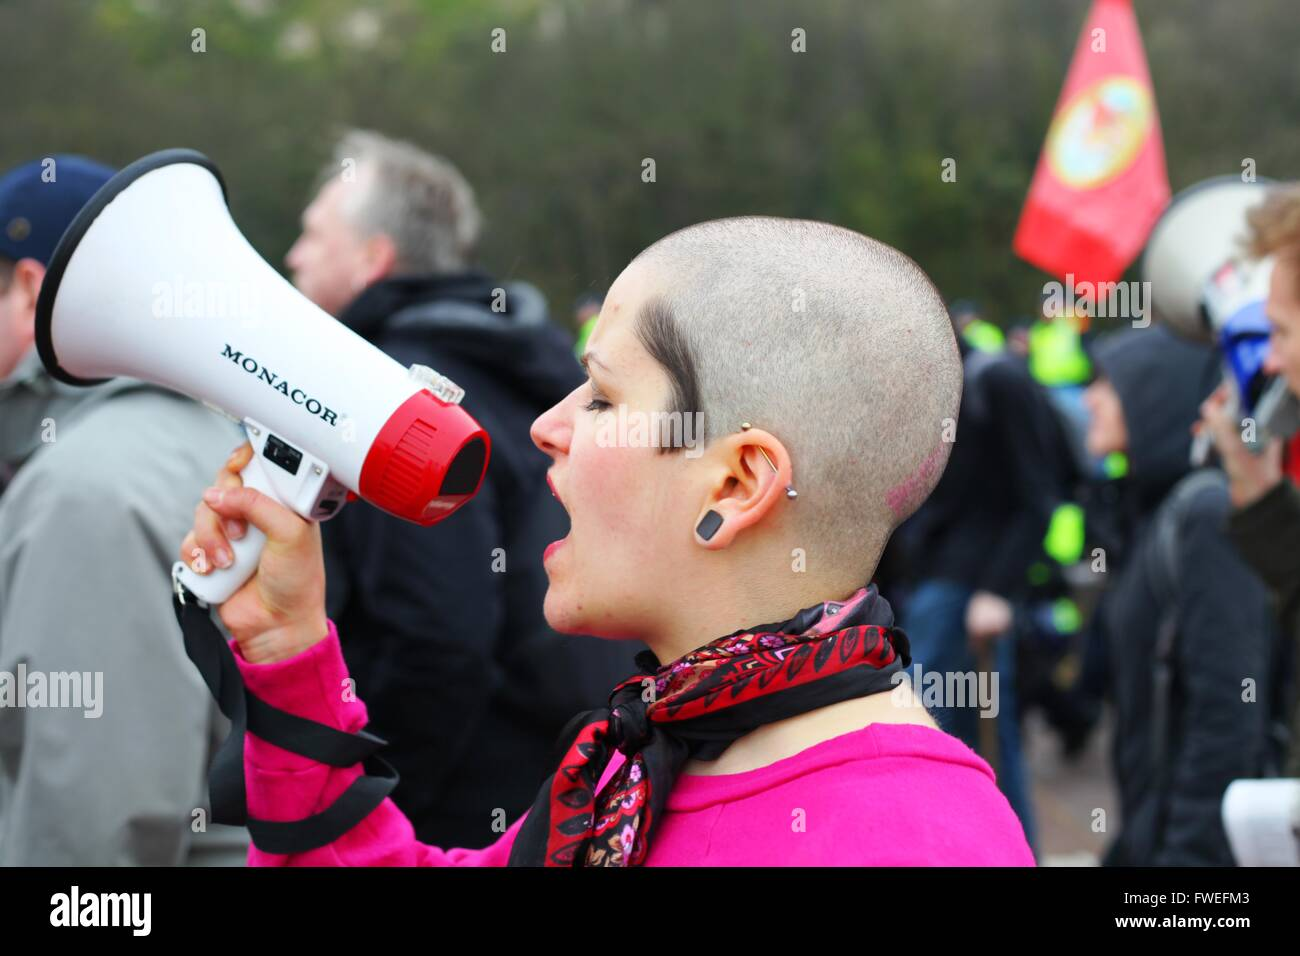 Anti Fascist groups show opposition to South East Alliance far right Unity demonstration. Dover, Kent, UK. - Stock Image